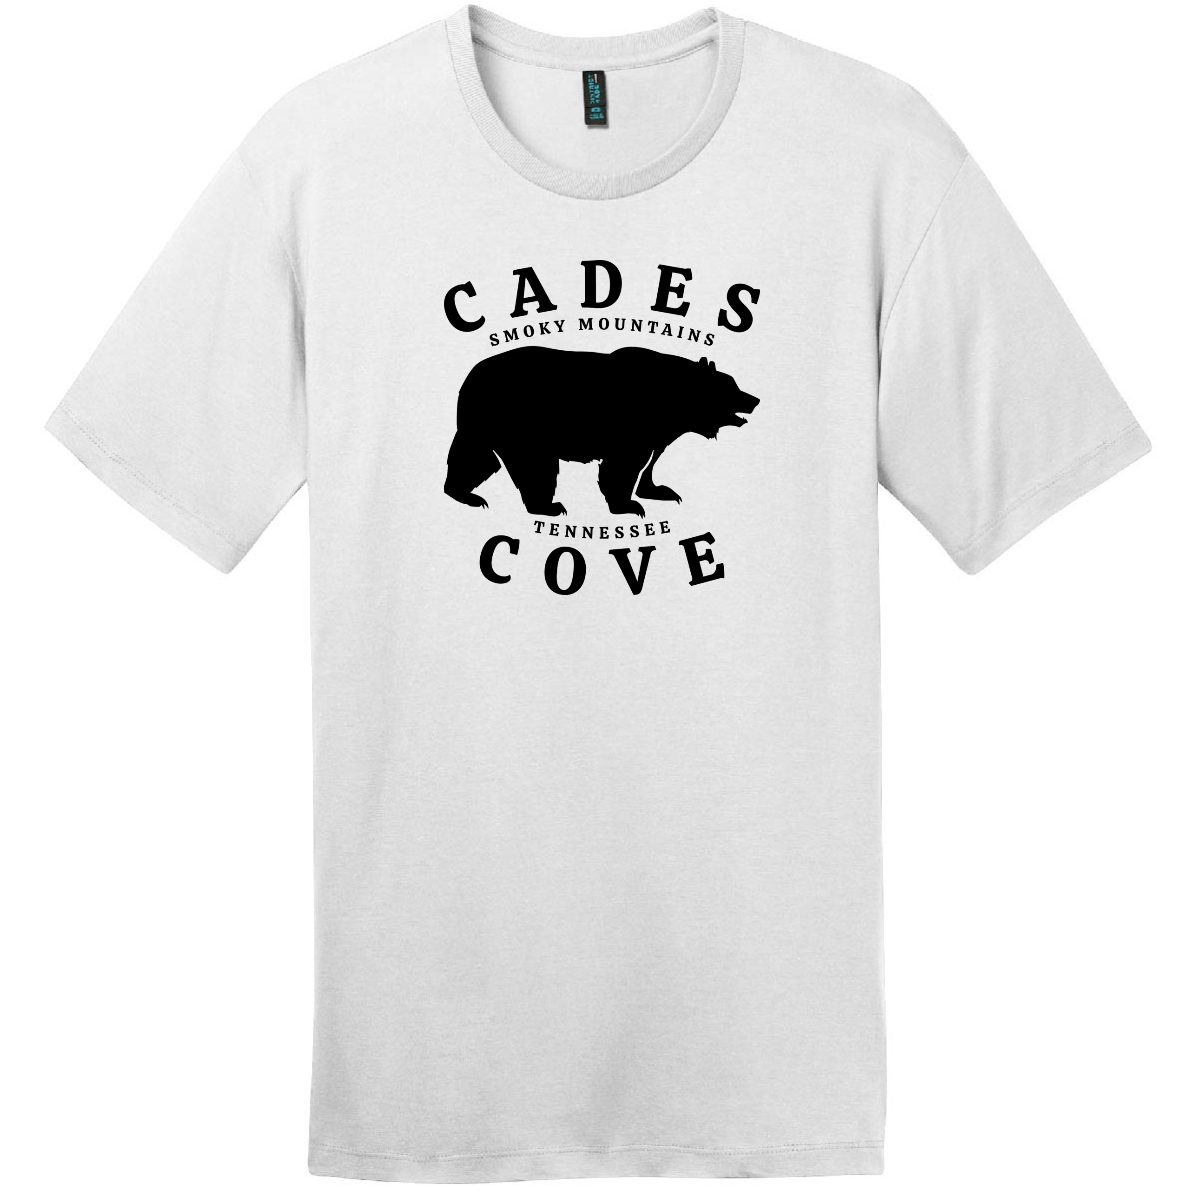 Cades Cove Tennessee Smoky Mountains T Shirt